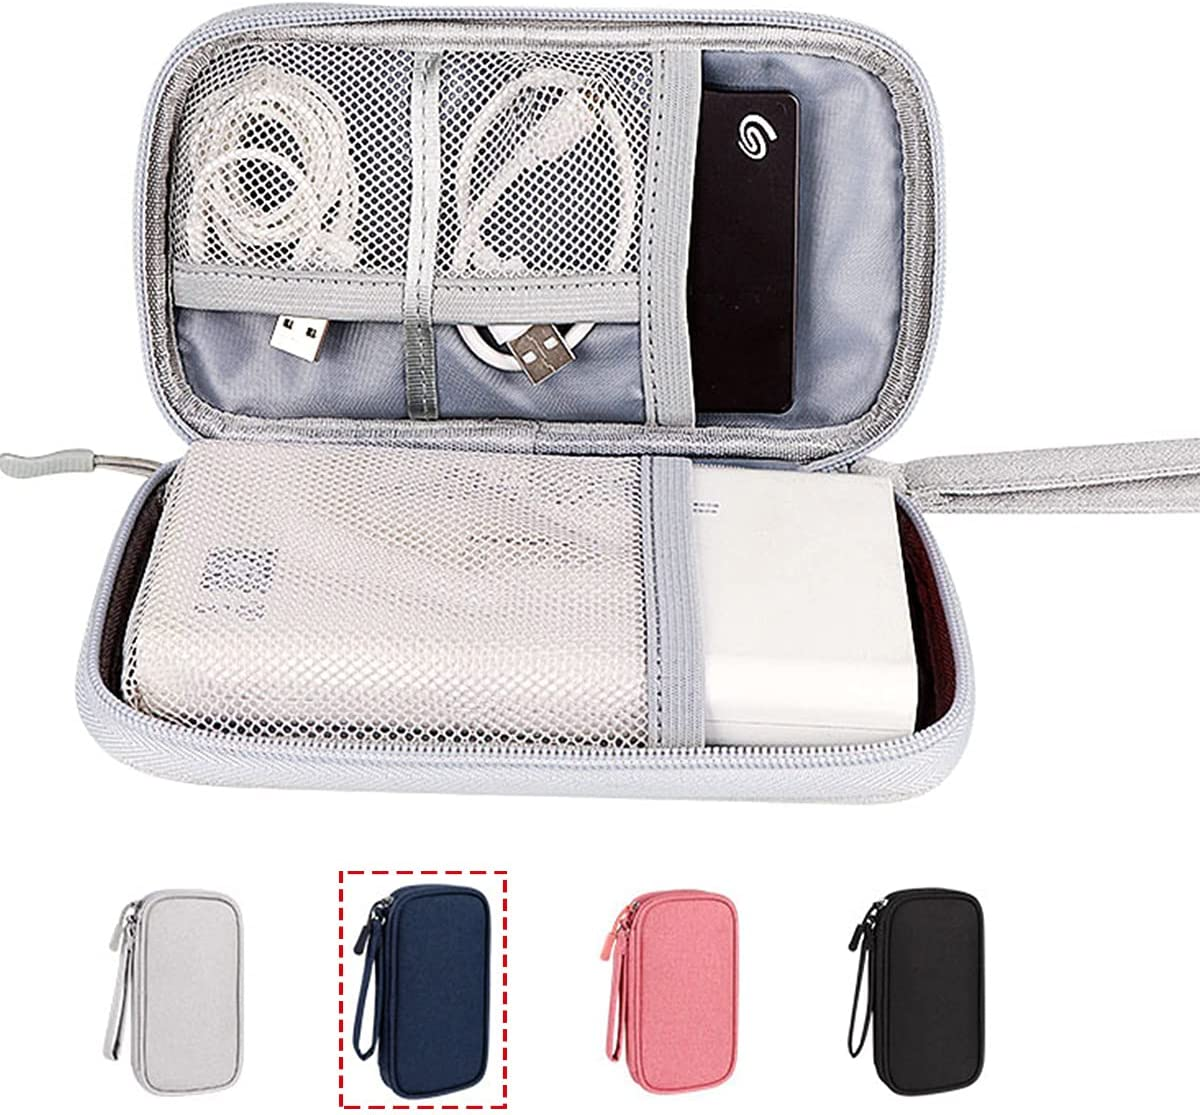 CAOODKDK Travel Universal Cable Organizer Electronics Accessories Cases, Waterproof Electronic Accessories Organizer Bag for Power Bank, Charging Cords, Chargers, Mouse, USB Cable, Earphones